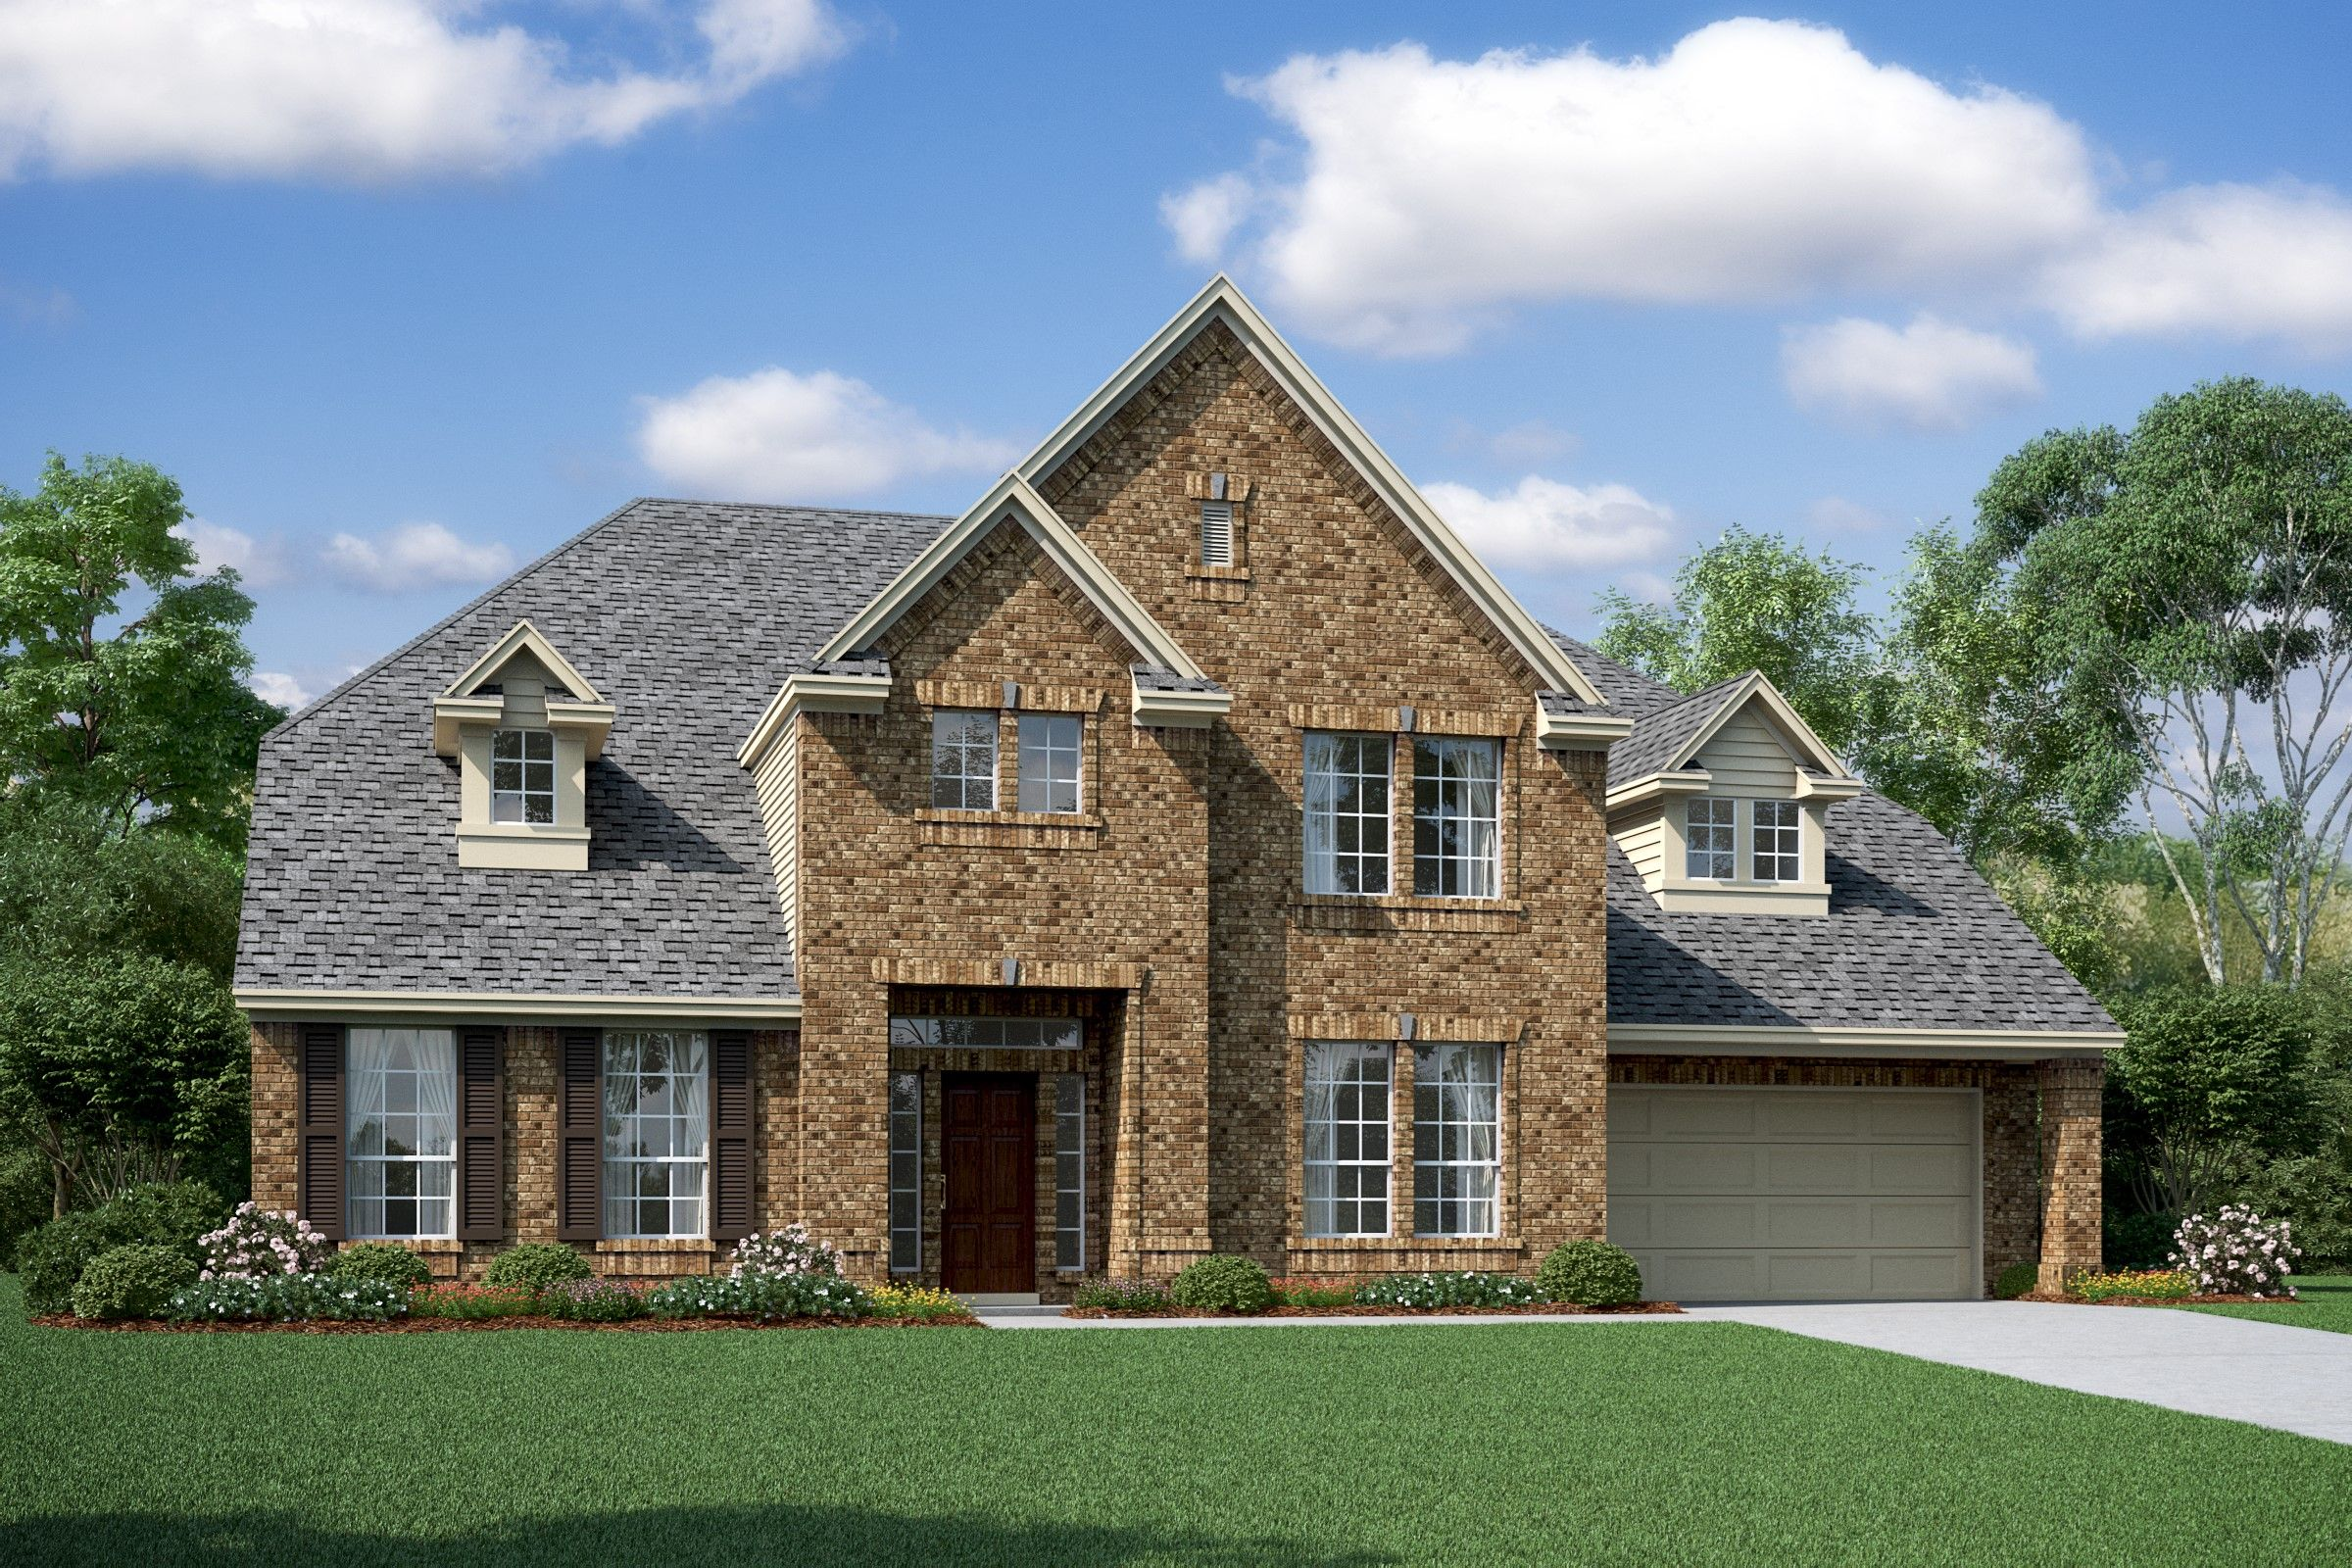 Single Family for Sale at Adaline 14818 Starwood Drive, Homesite 13 Baytown, Texas 77523 United States